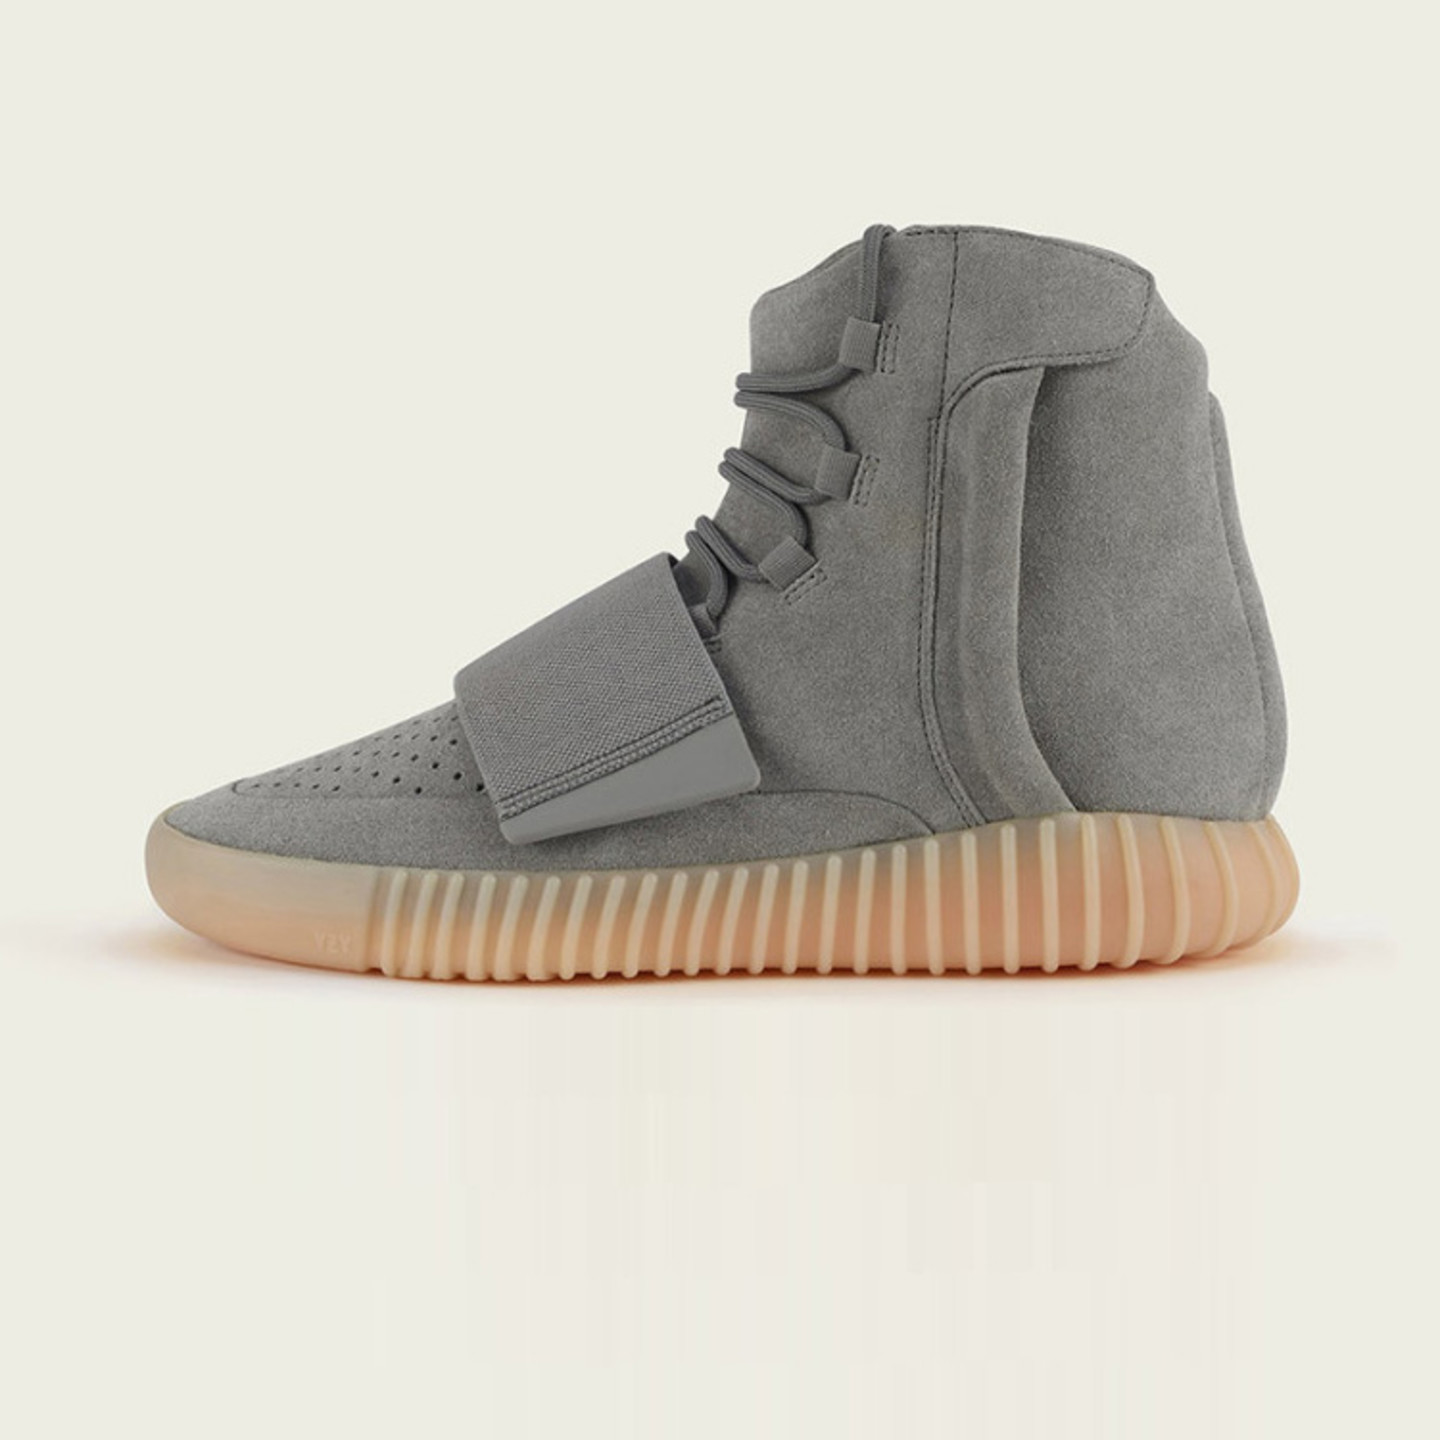 Adidas Yeezy Boost 750 Light Grey / Light Grey / Gum BB1840